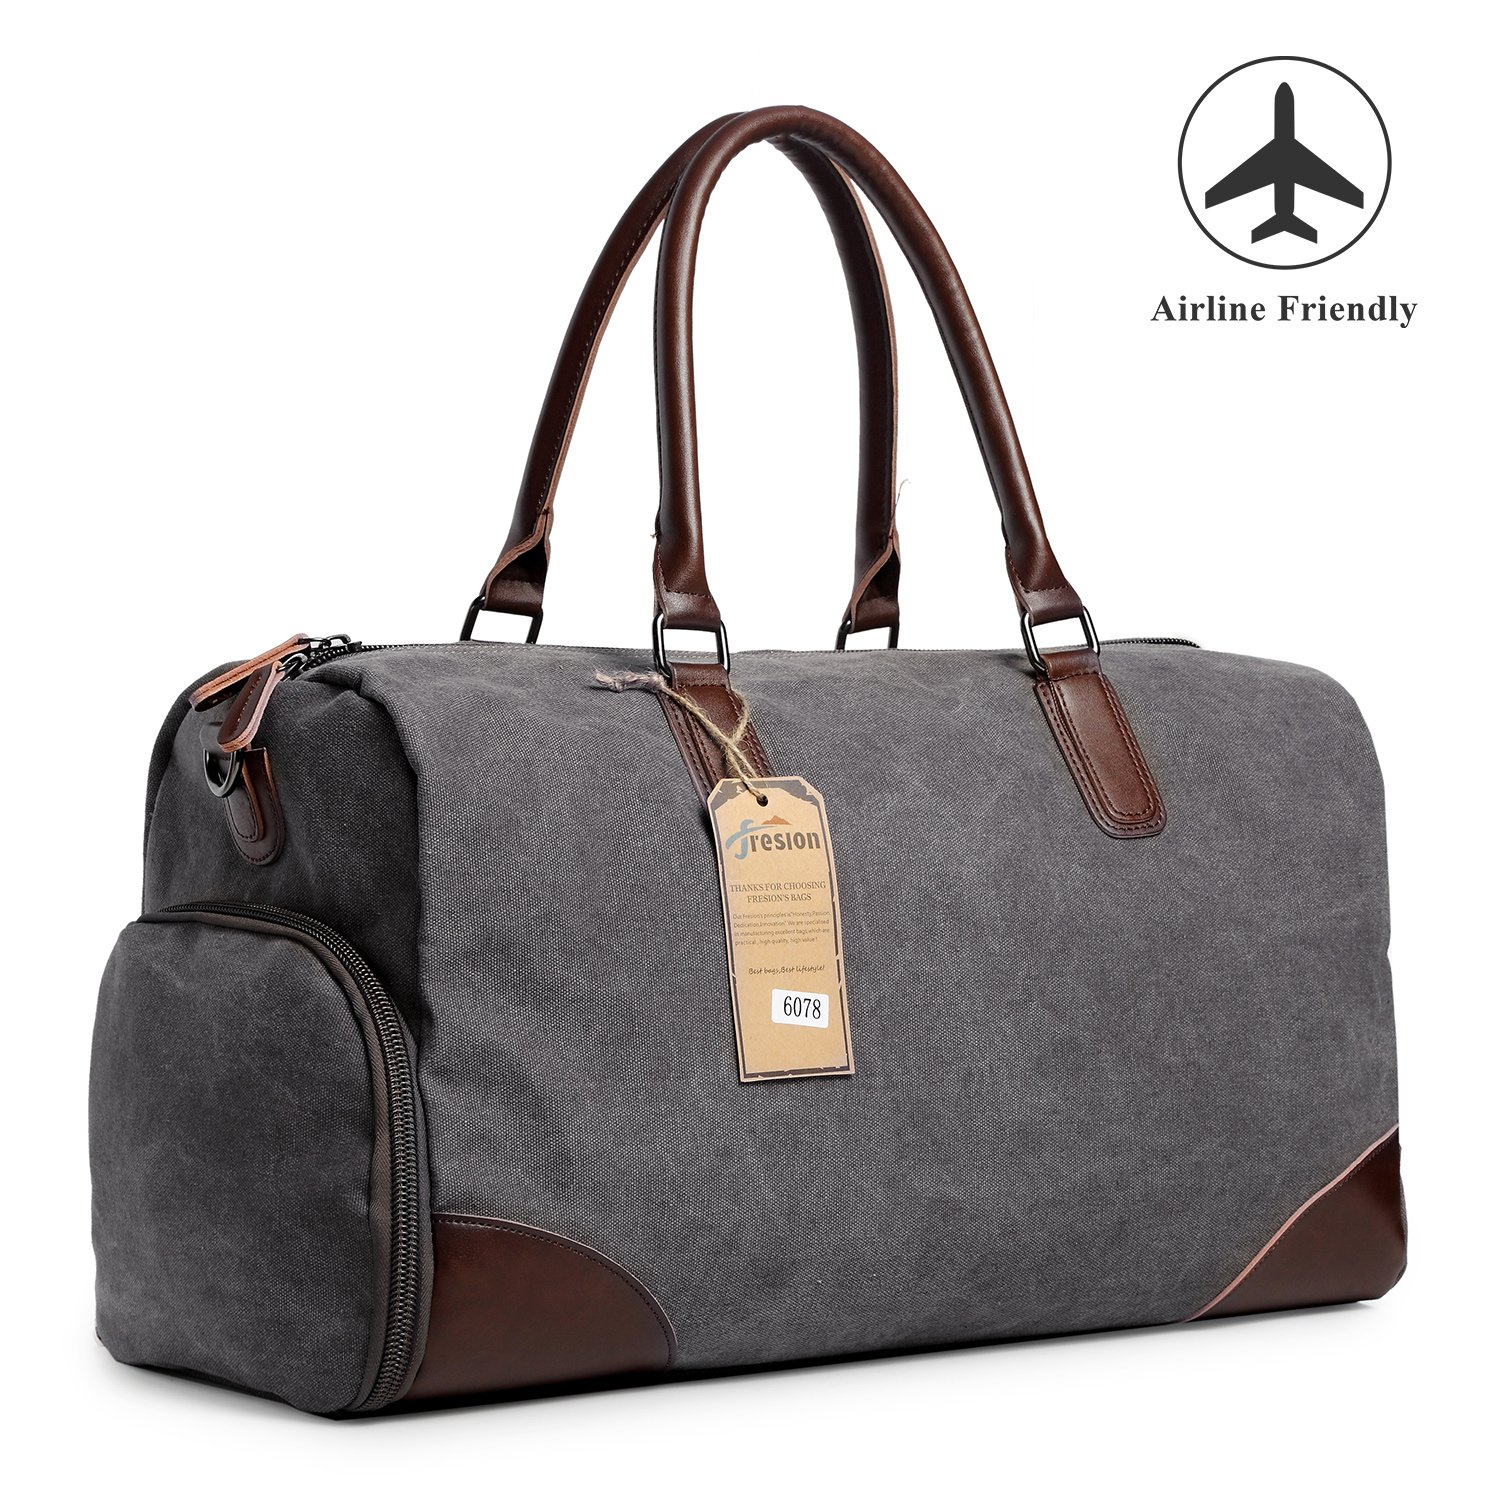 Fresion Canvas Duffel Leather Carry On Bag Weekend Overnight Tote Bag Men Shoe Pouch K6078